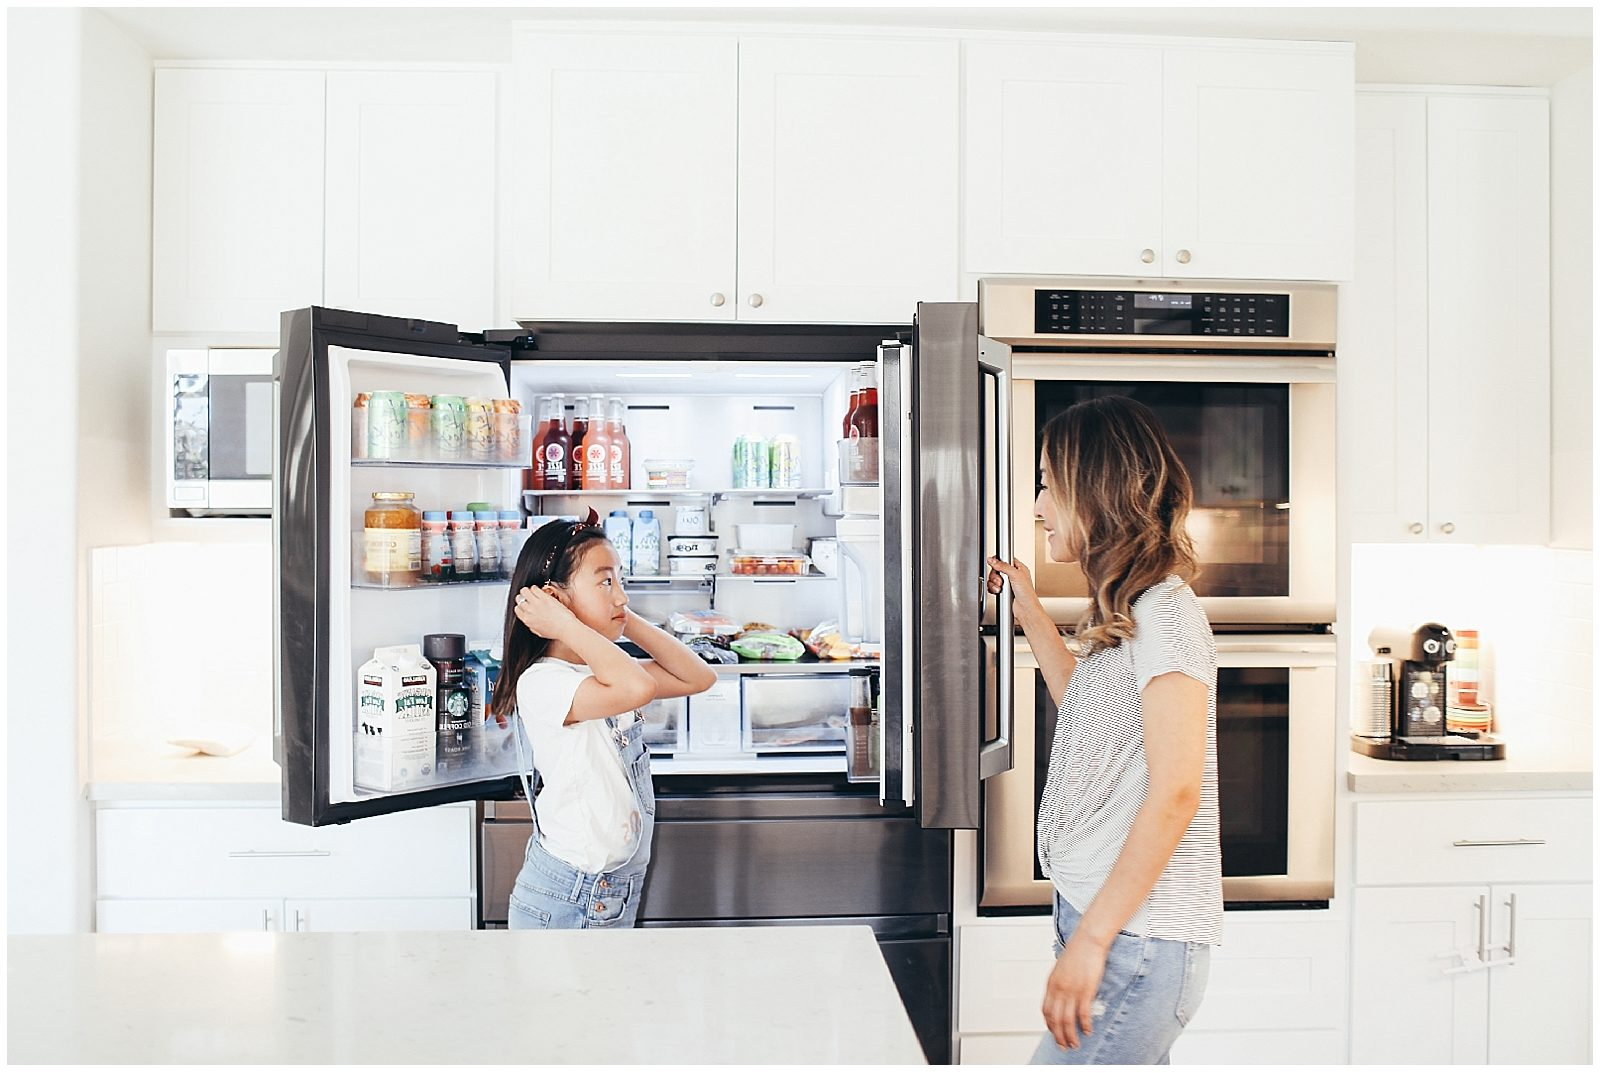 Mom and her daughter talking in the kitchen while they close the french door refrigerator.